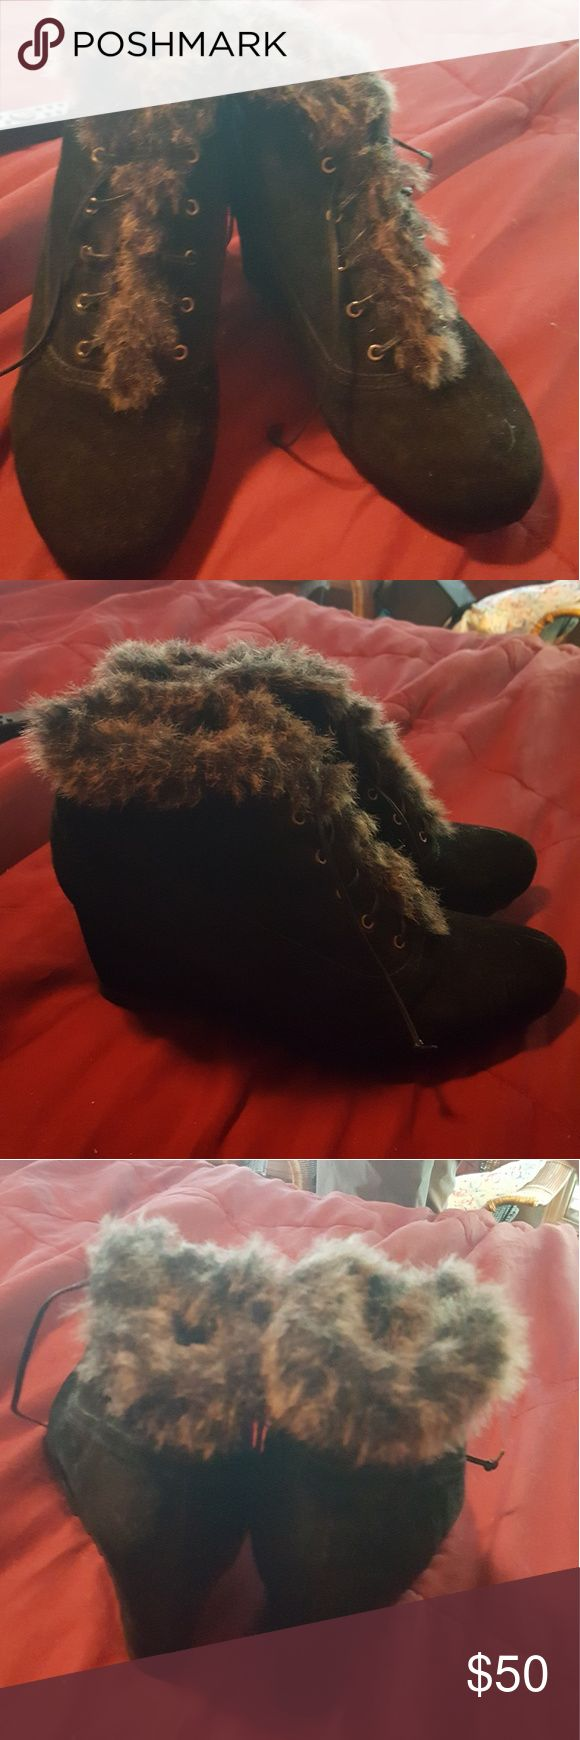 Women's earthies black boot with fur Ankle boot earthies Shoes Ankle Boots & Booties